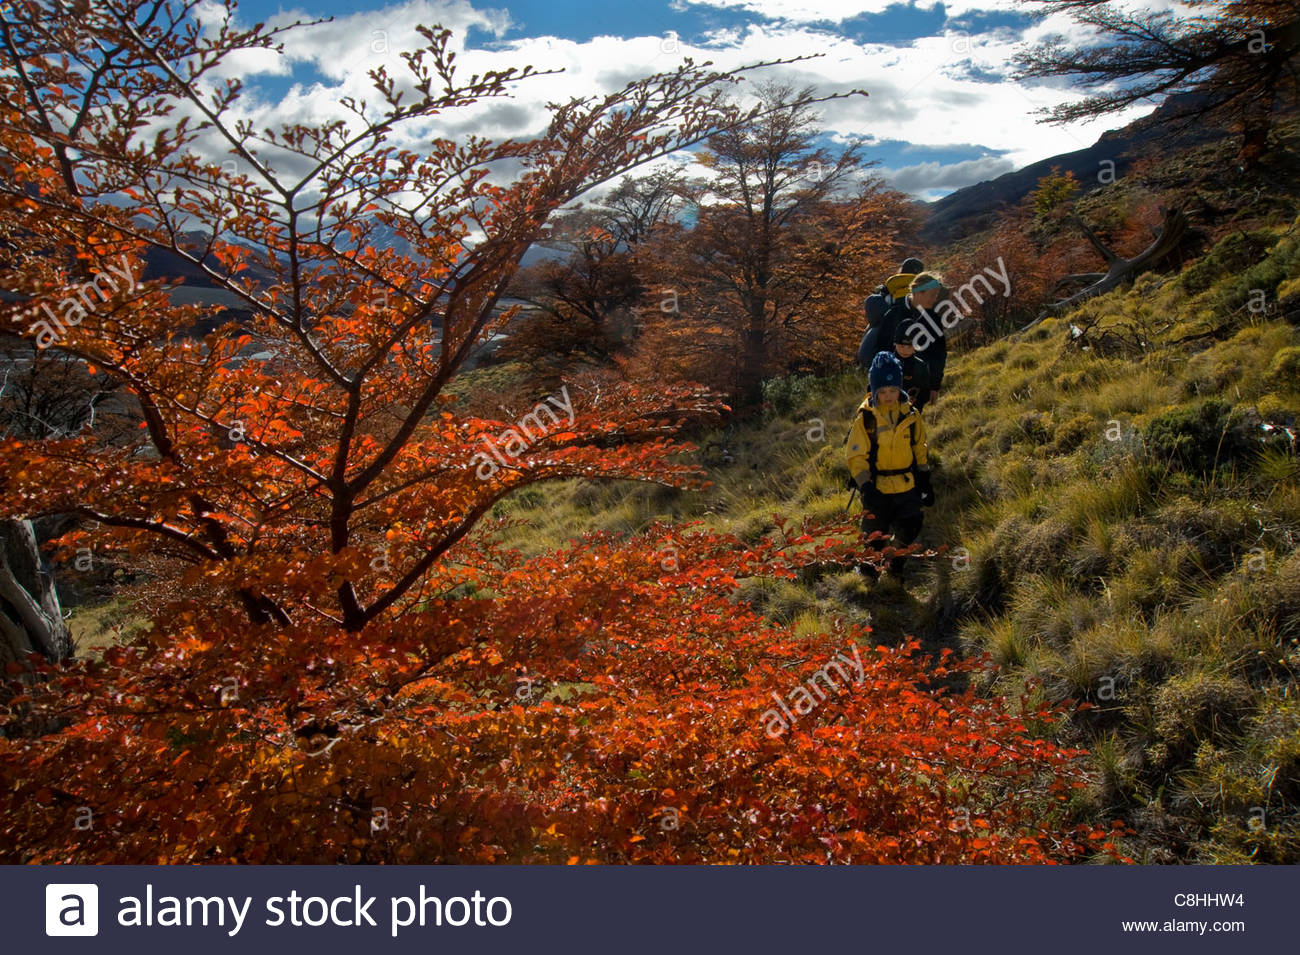 A family treks through beech trees resplendent in fall colors. - Stock Image